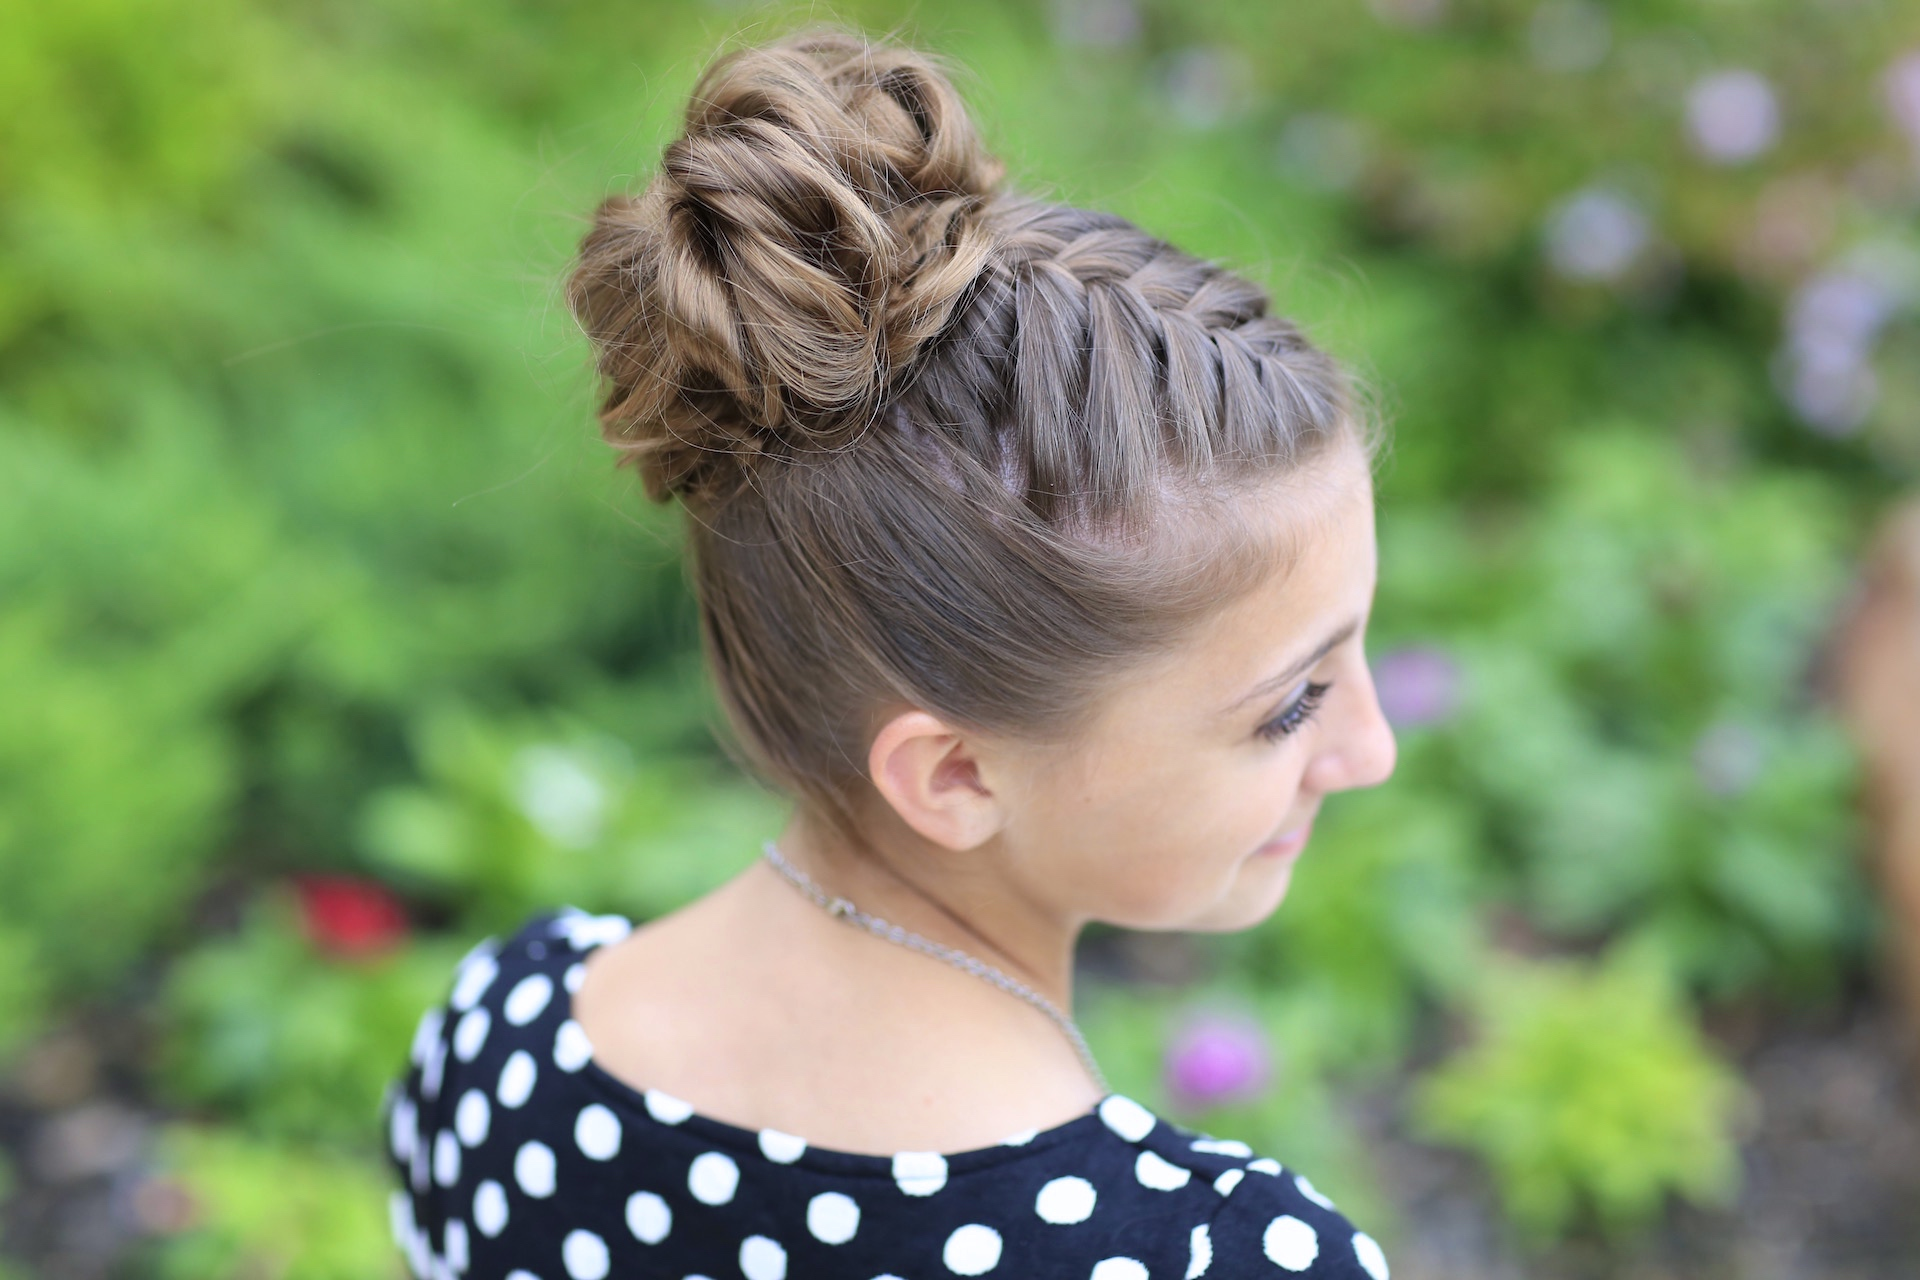 Hairstyles: Double-French Messy Bun Updo